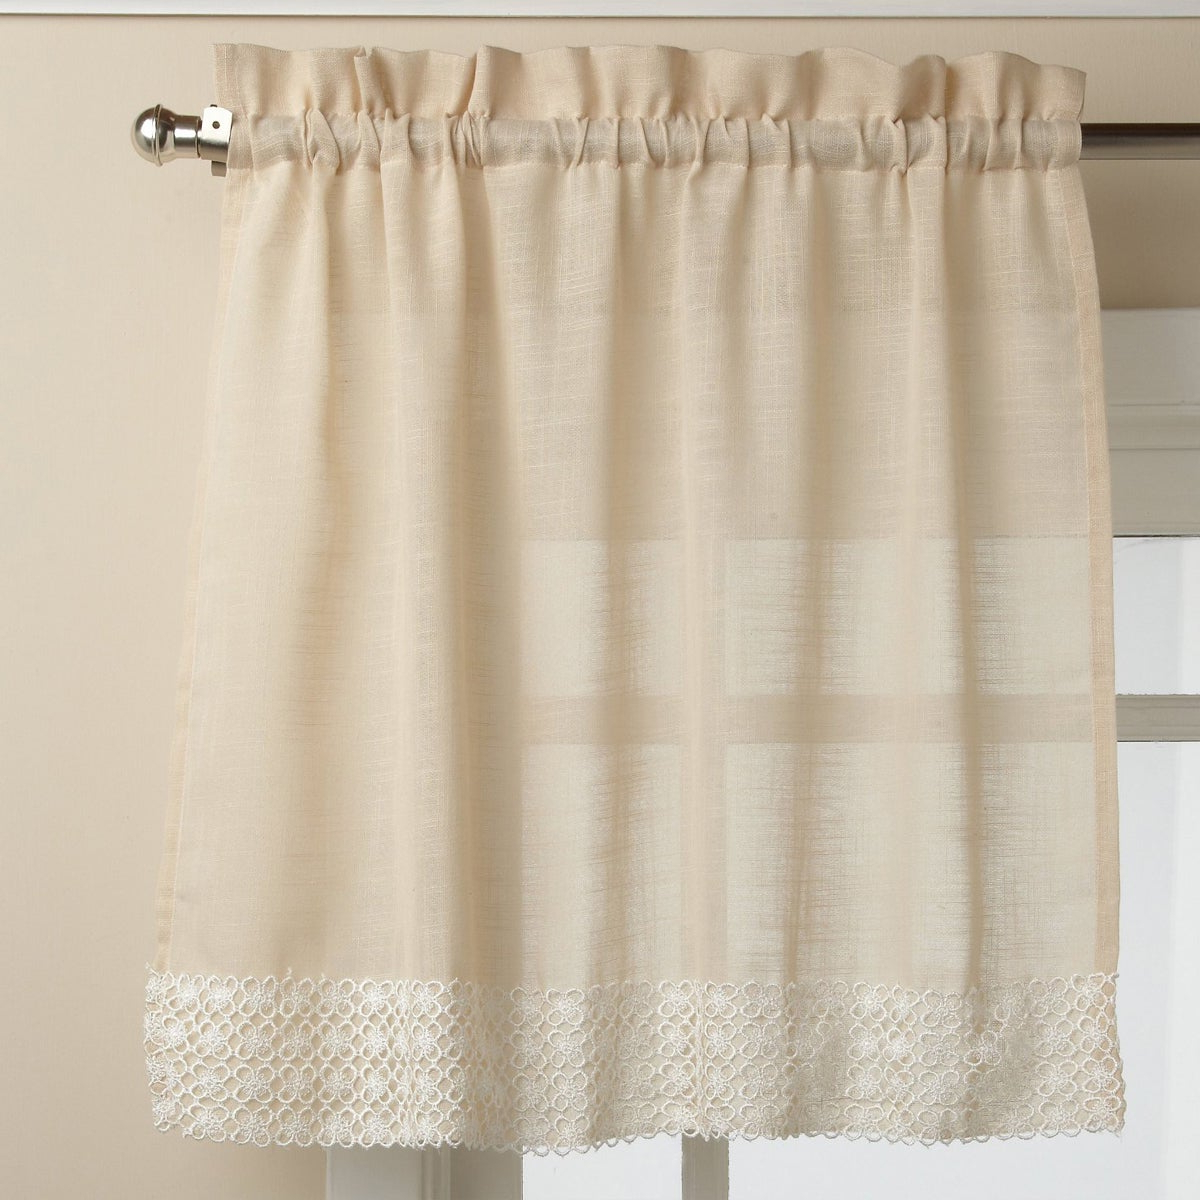 French Vanilla Country Style Curtain Parts With White Daisy Lace Accent   Tier, Swag And Valance Options Inside Popular French Vanilla Country Style Curtain Parts With White Daisy Lace Accent (Gallery 2 of 20)